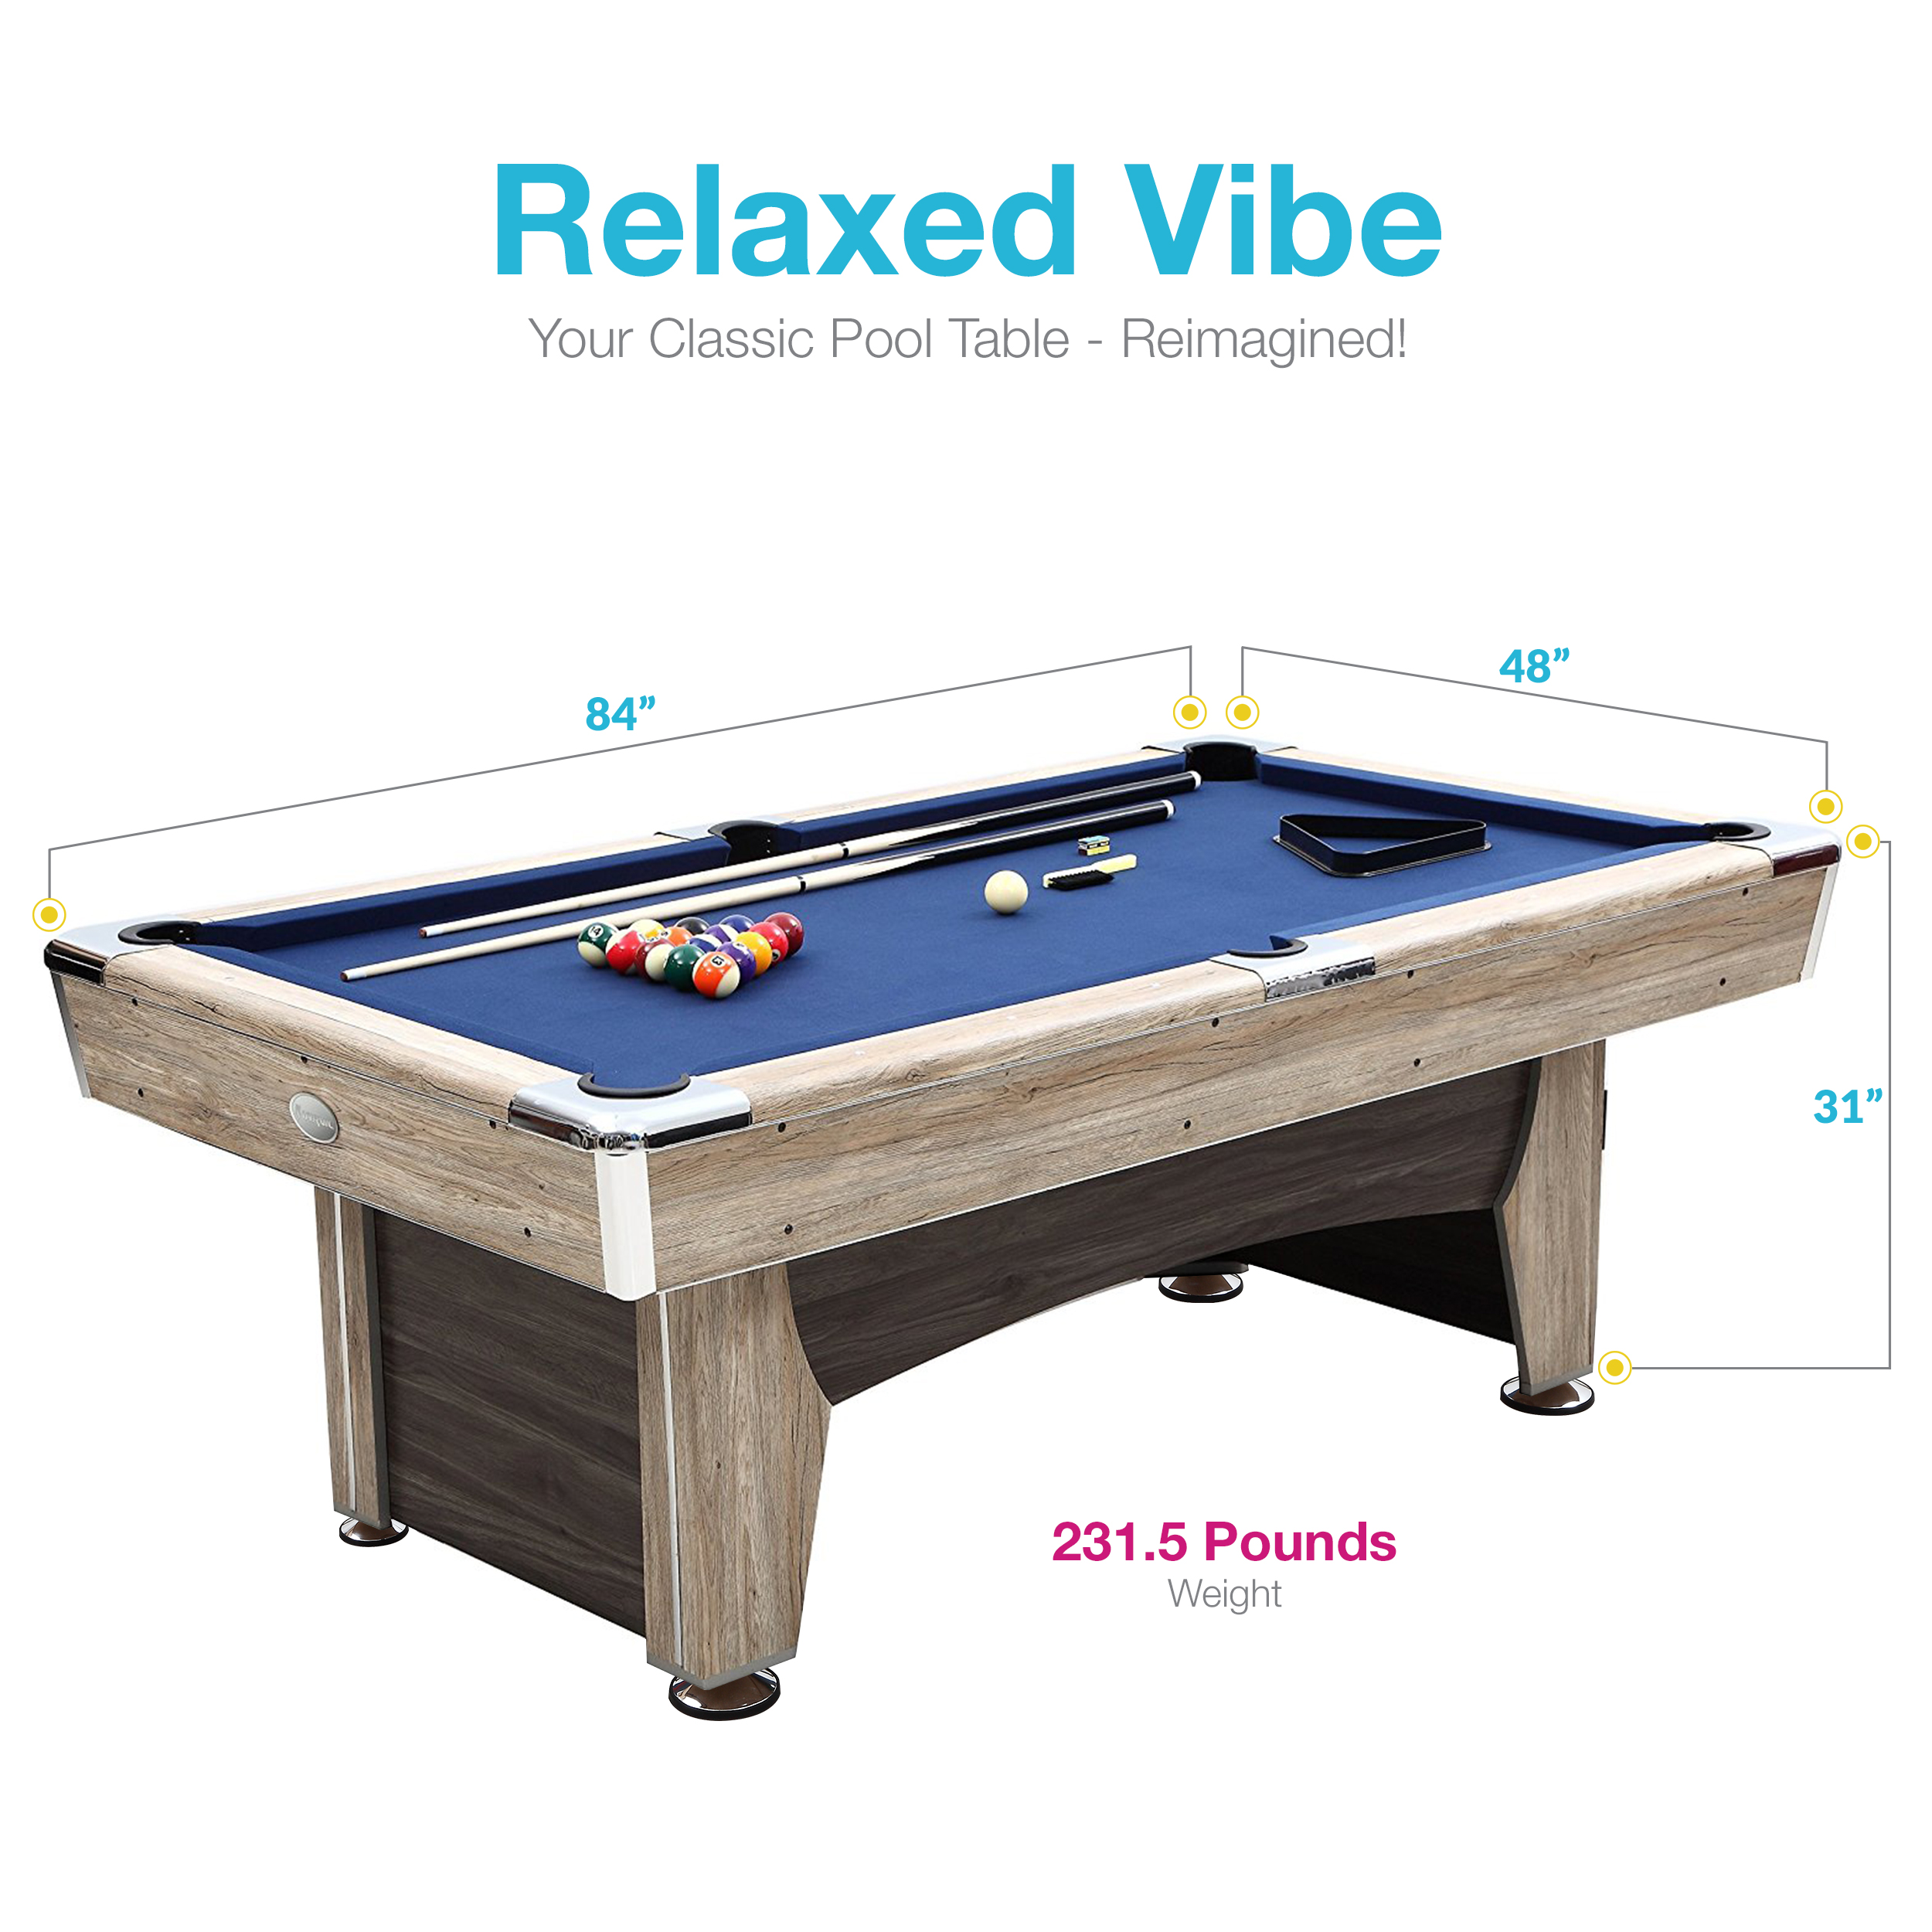 Harvil Beachcomber Indoor Pool Table Inches With Free Complete - 84 pool table